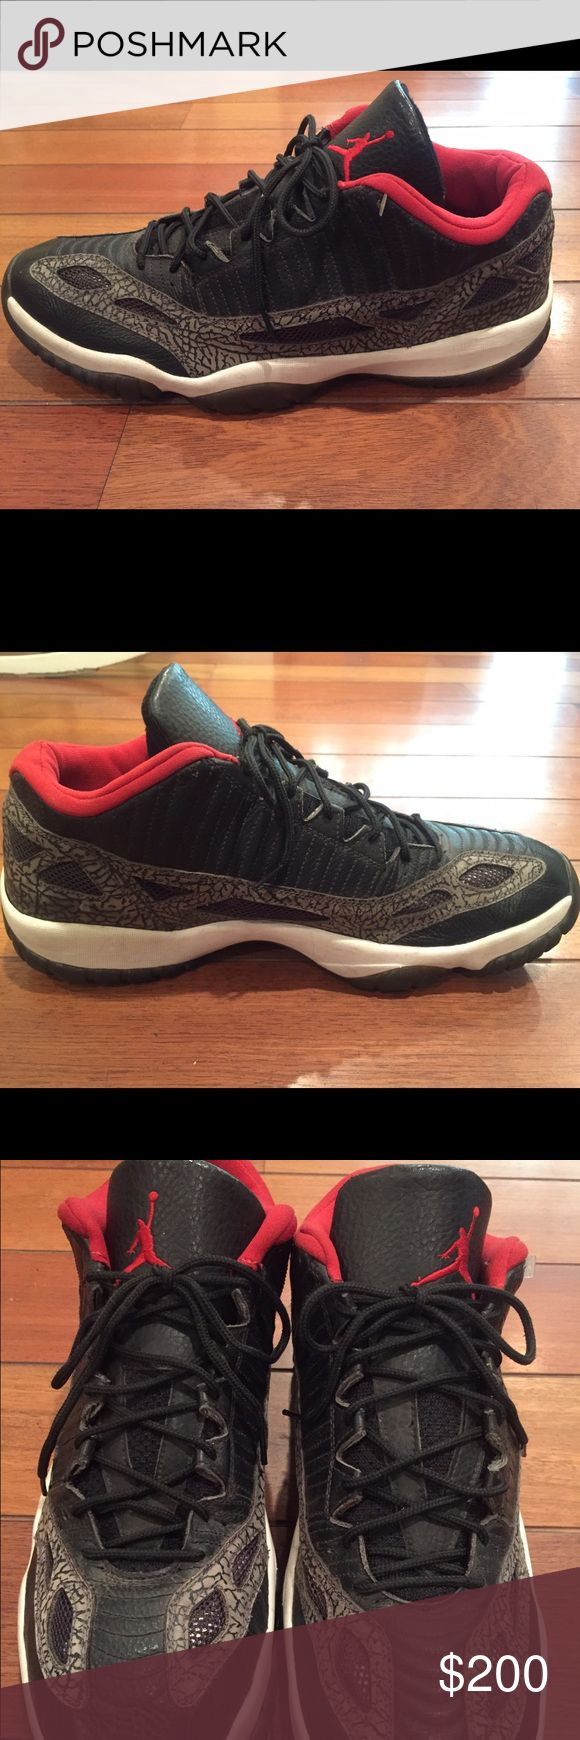 Air Jordan XI 11 Retro 2003 Size 18 Nike air Jordan XI retro low black/red-dark Charcoal 2003 306008-062 size 18. Great condition. Inside like new, bottoms clean and no scuffs. Minor creasing from storage on left toe. Some discoloration on the white but easy to clean. Nike Air Jordan Shoes Sneakers